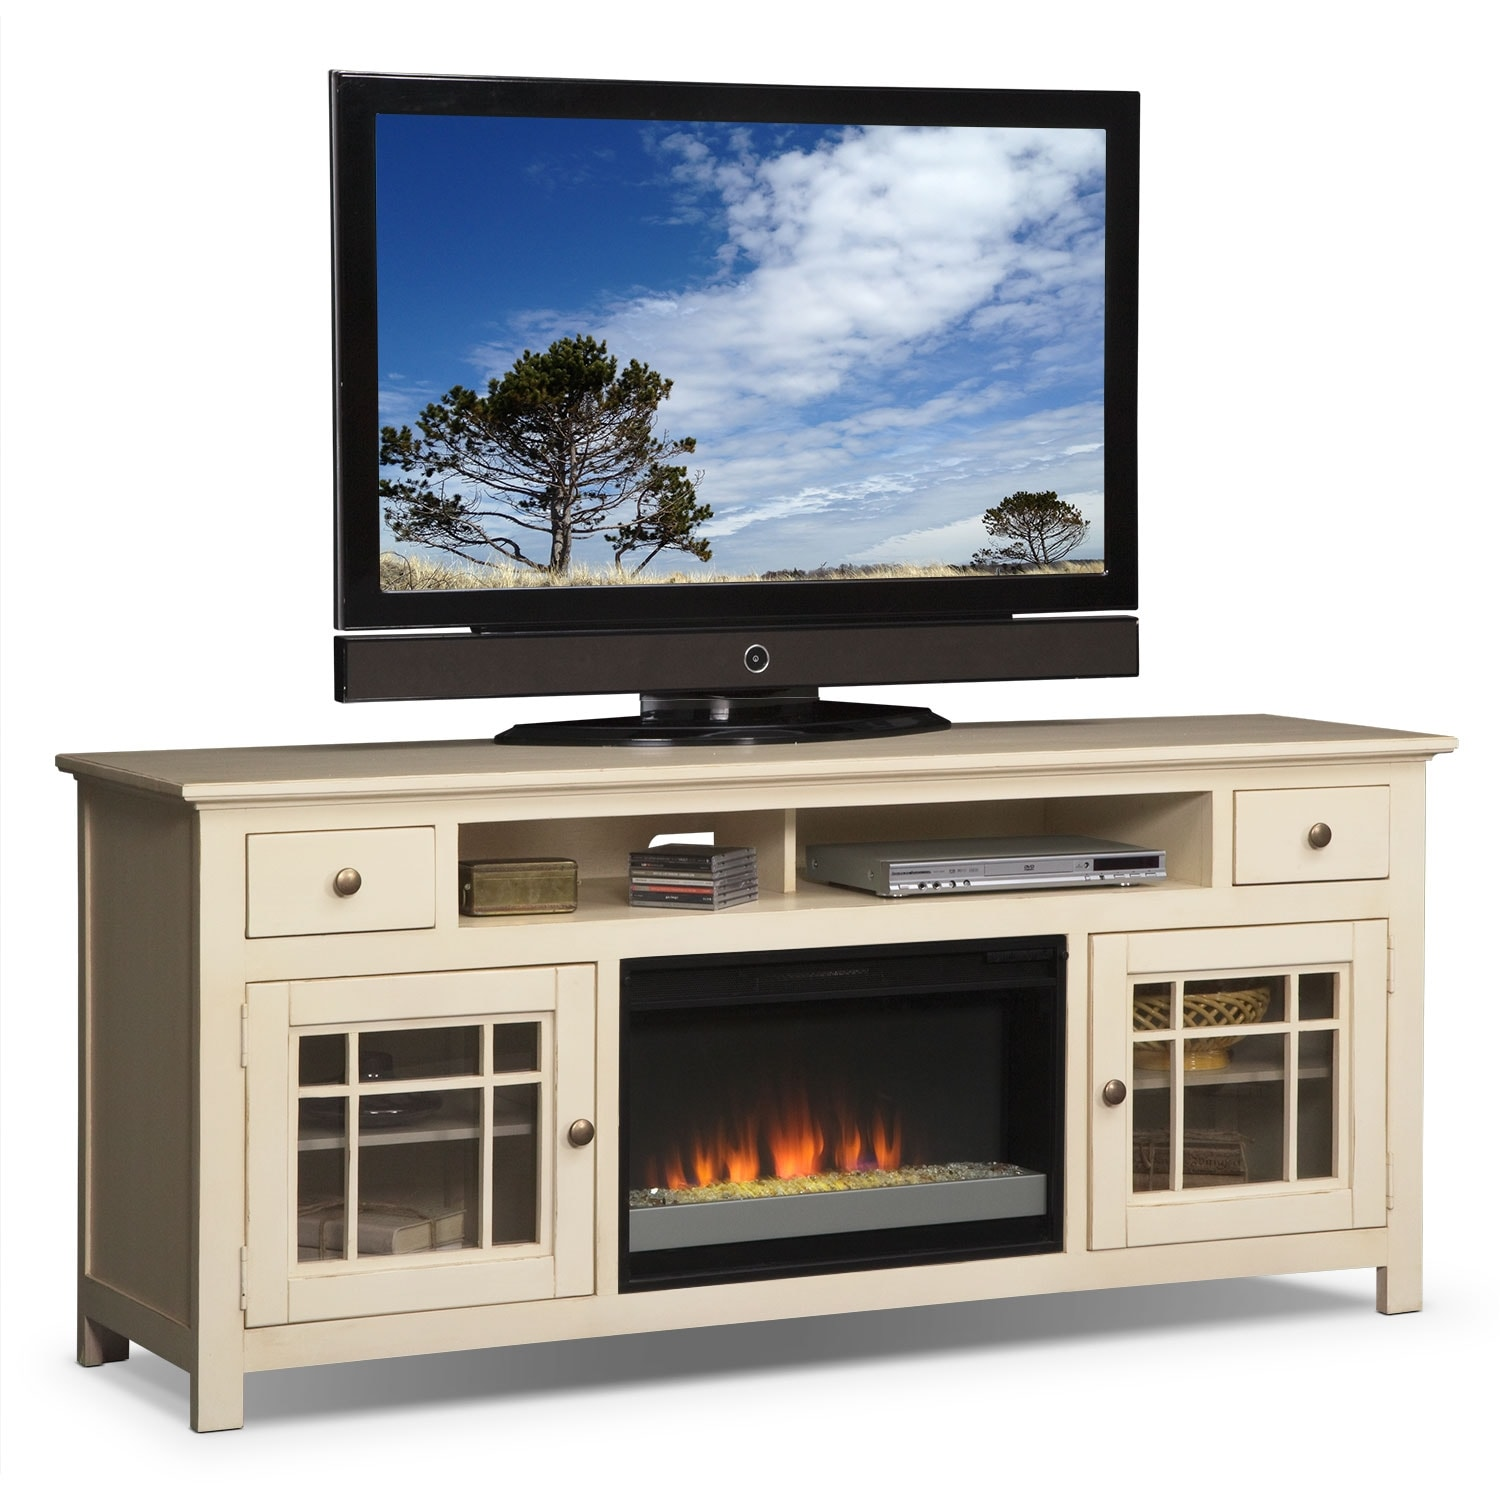 White tv stand with electric fireplace - Merrick 74 Fireplace Tv Stand With Contemporary Insert White